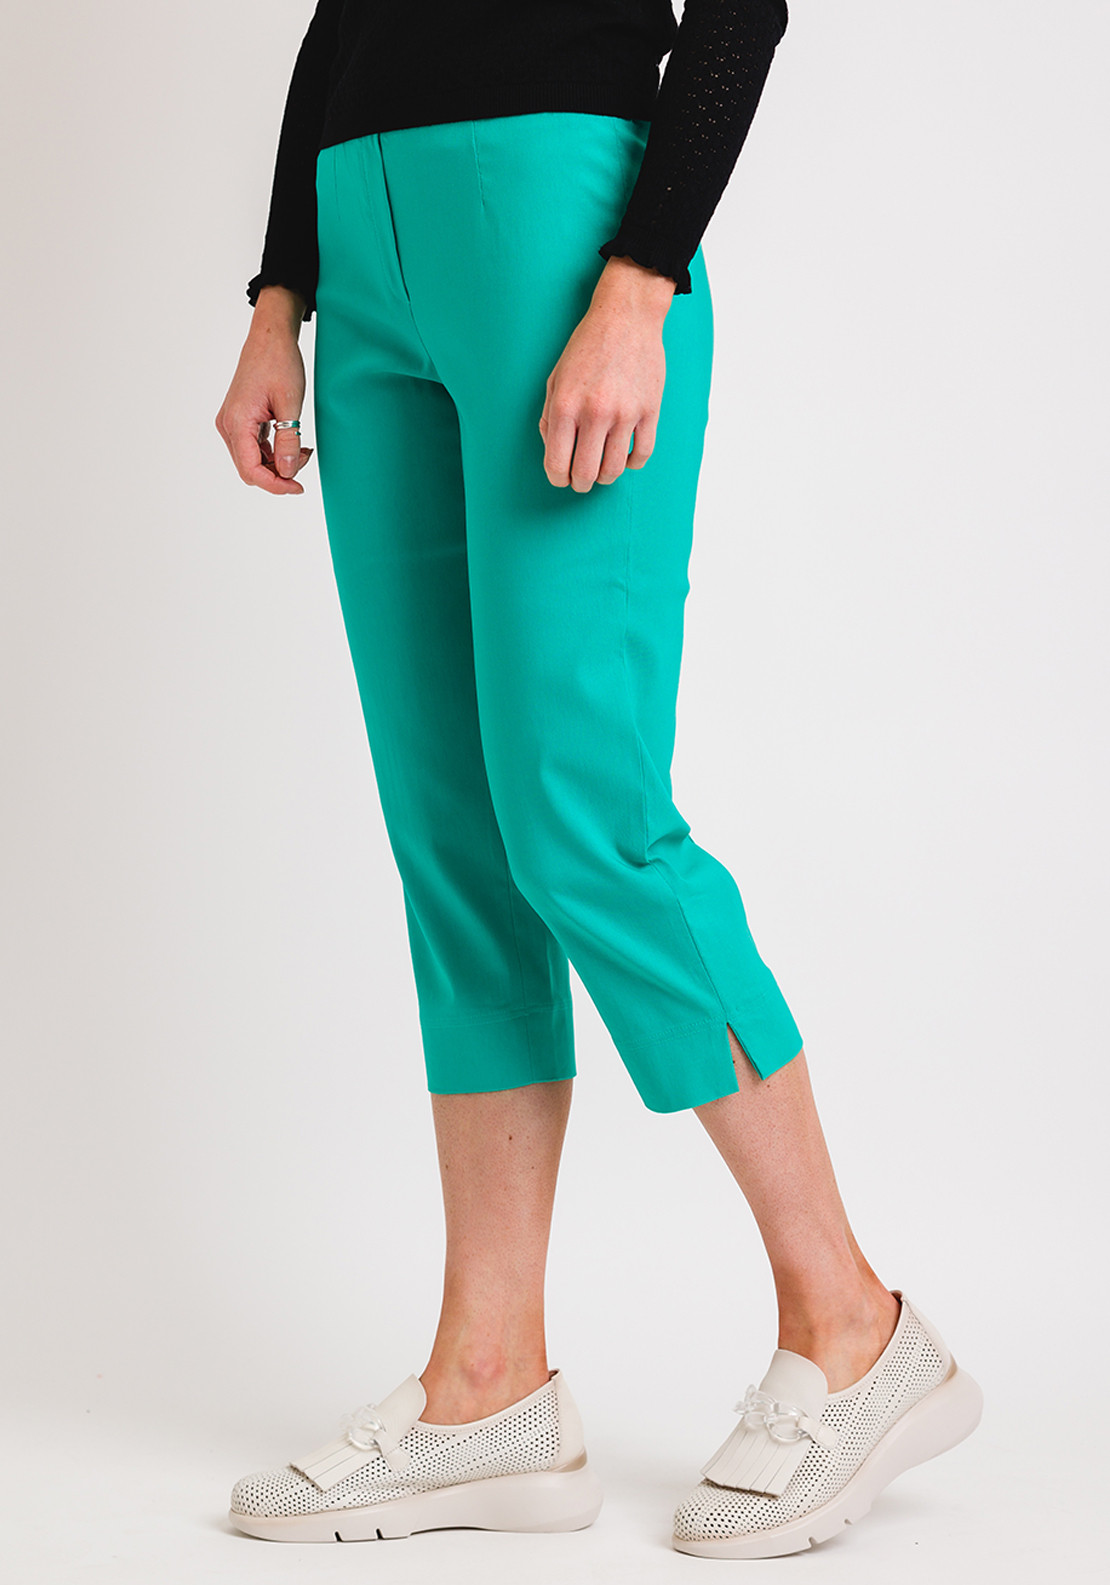 Robell Marie 07 Slim Fit Cropped Trousers, Jade Green